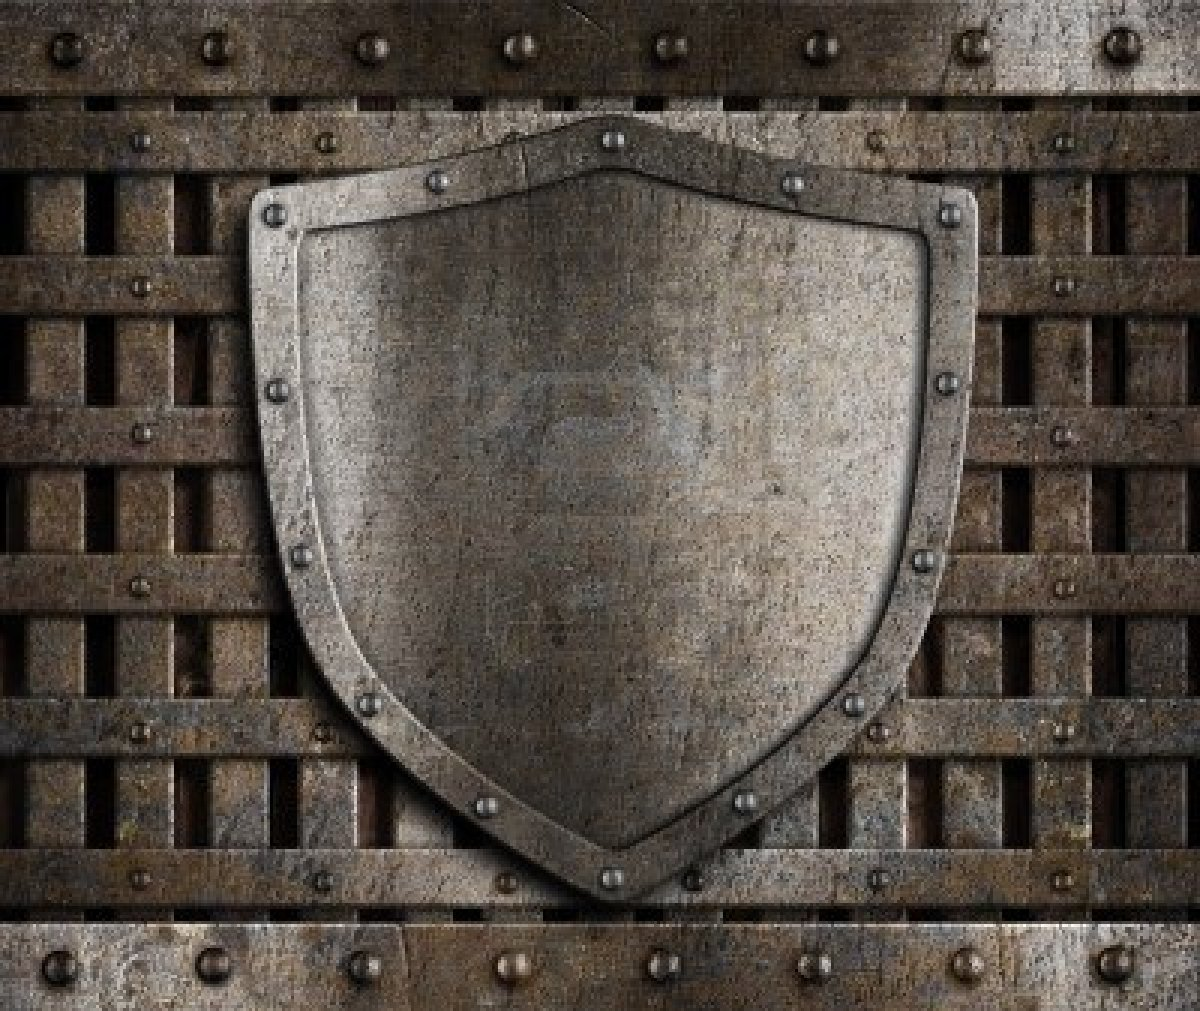 12202049-aged-metal-shield-on-wooden-medieval-gates.jpg